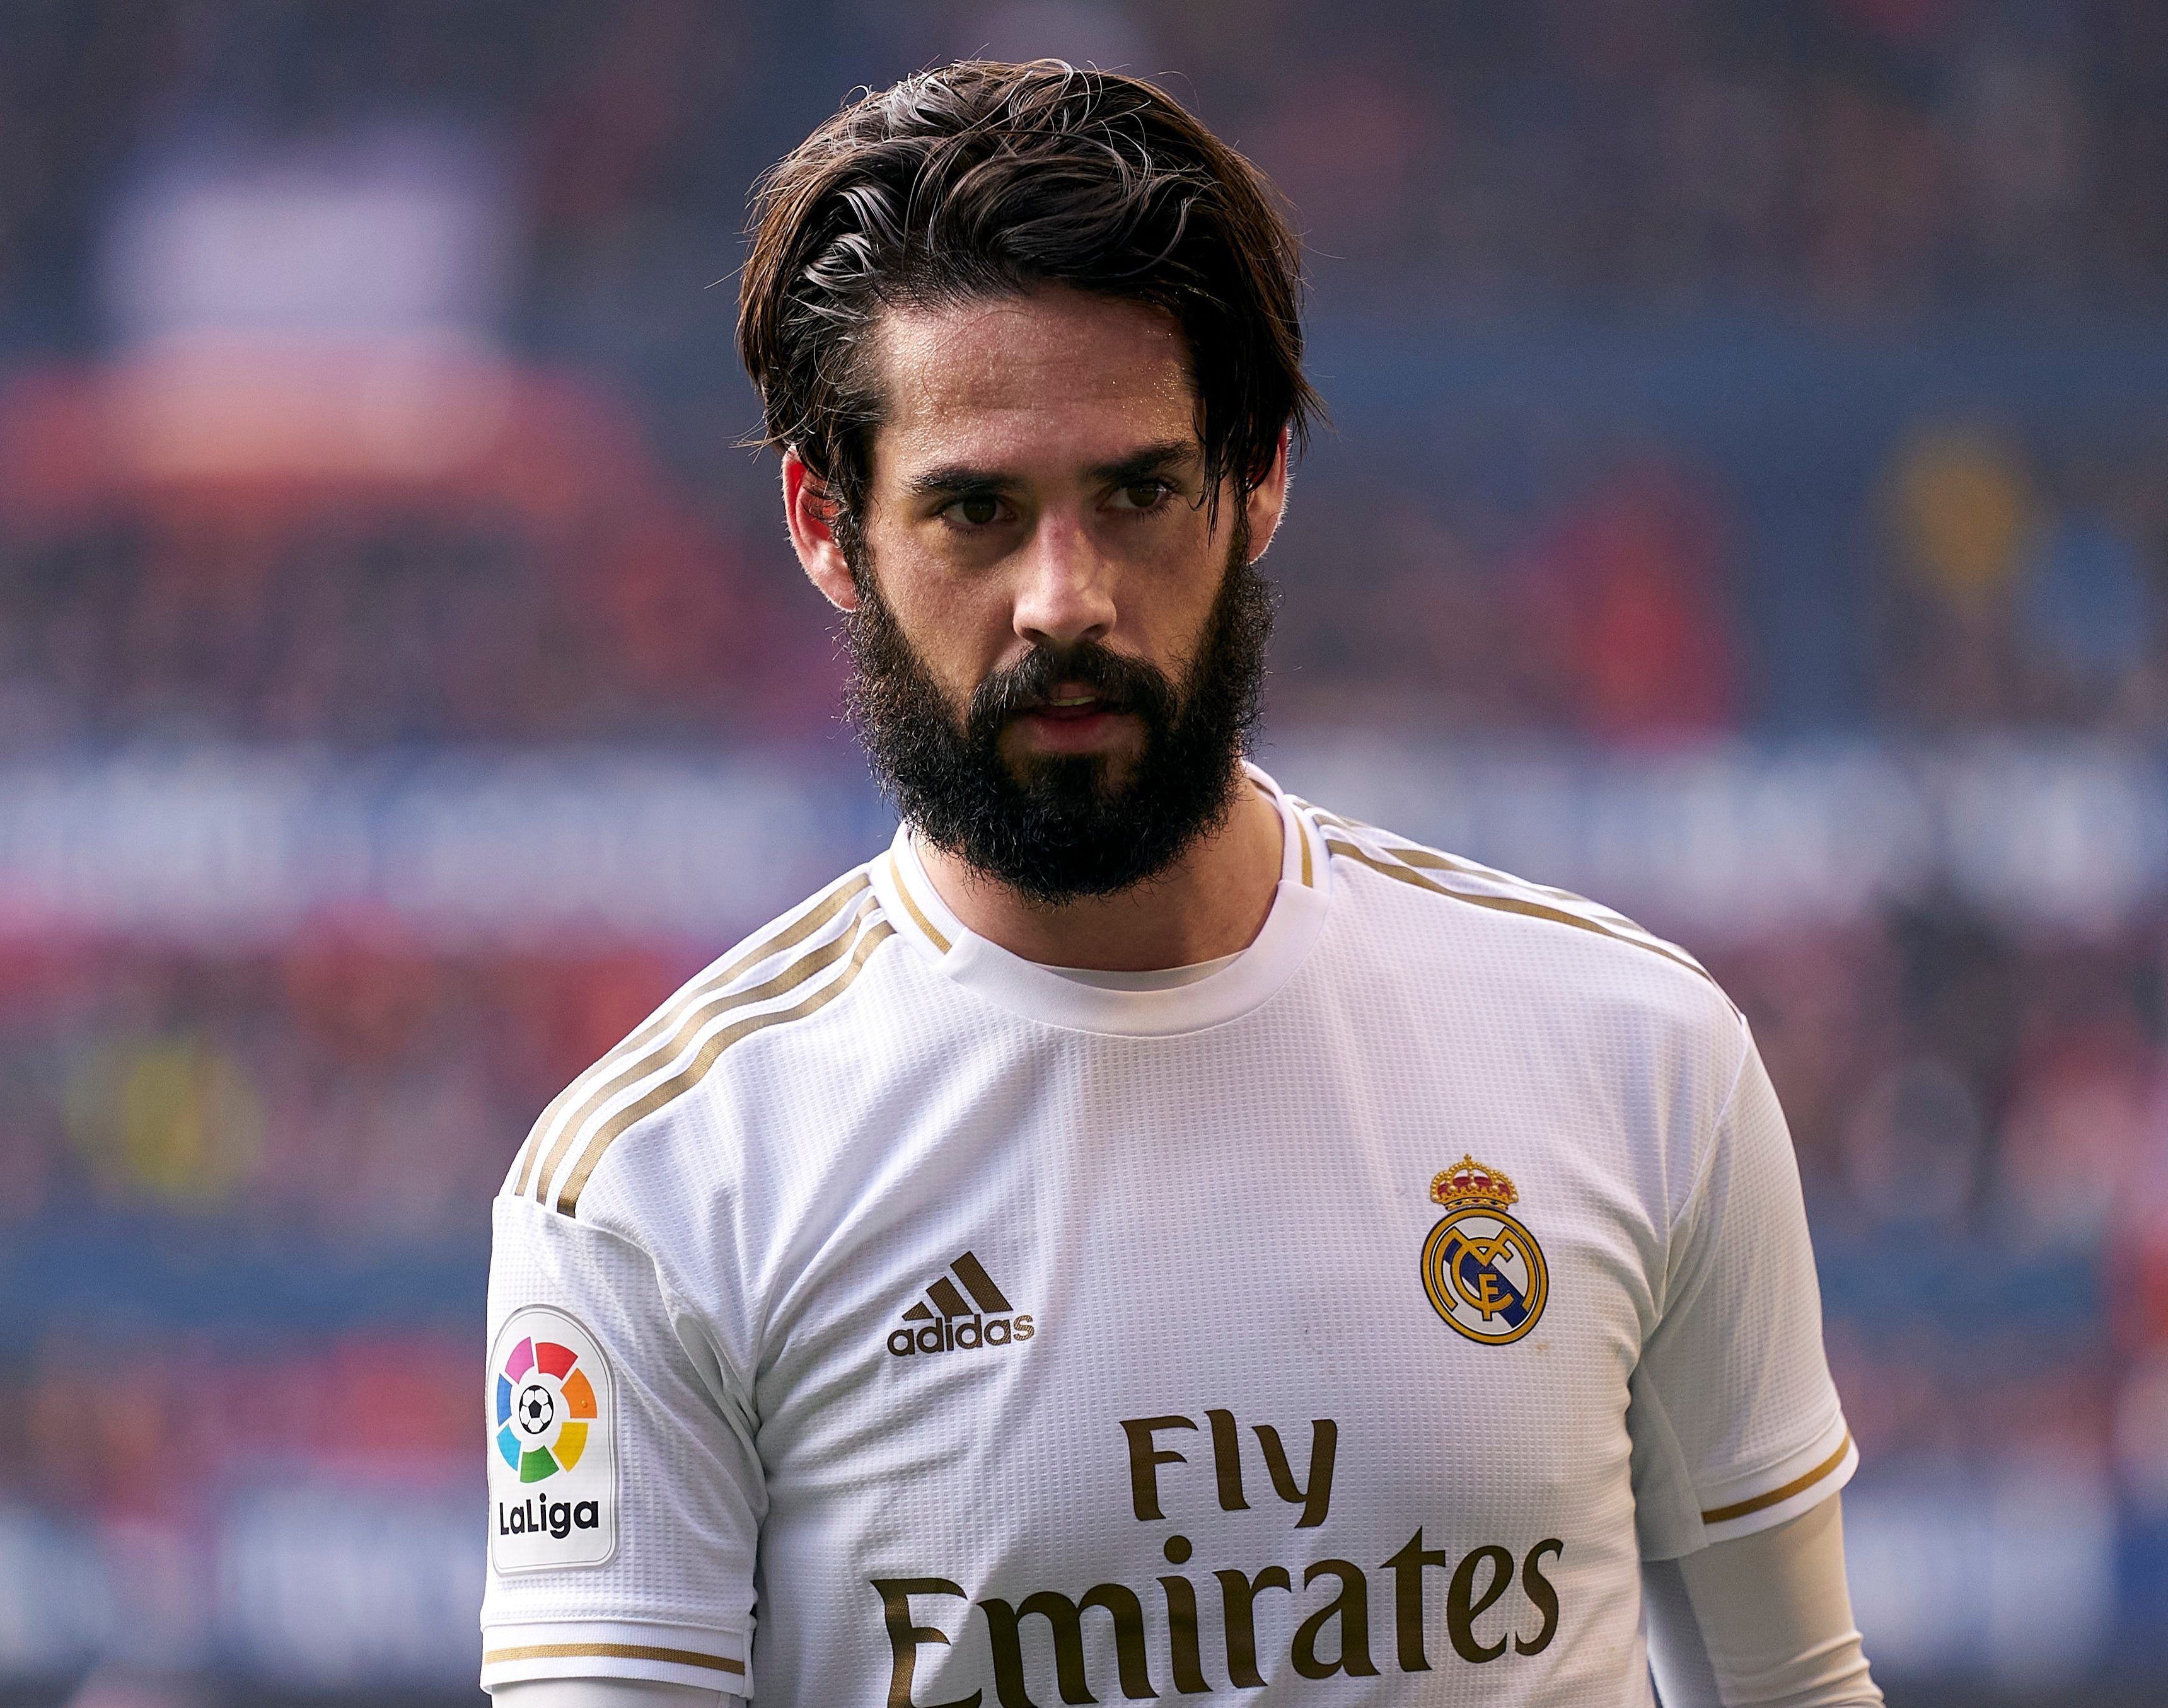 The reasons behind Isco's decision to leave Real Madrid